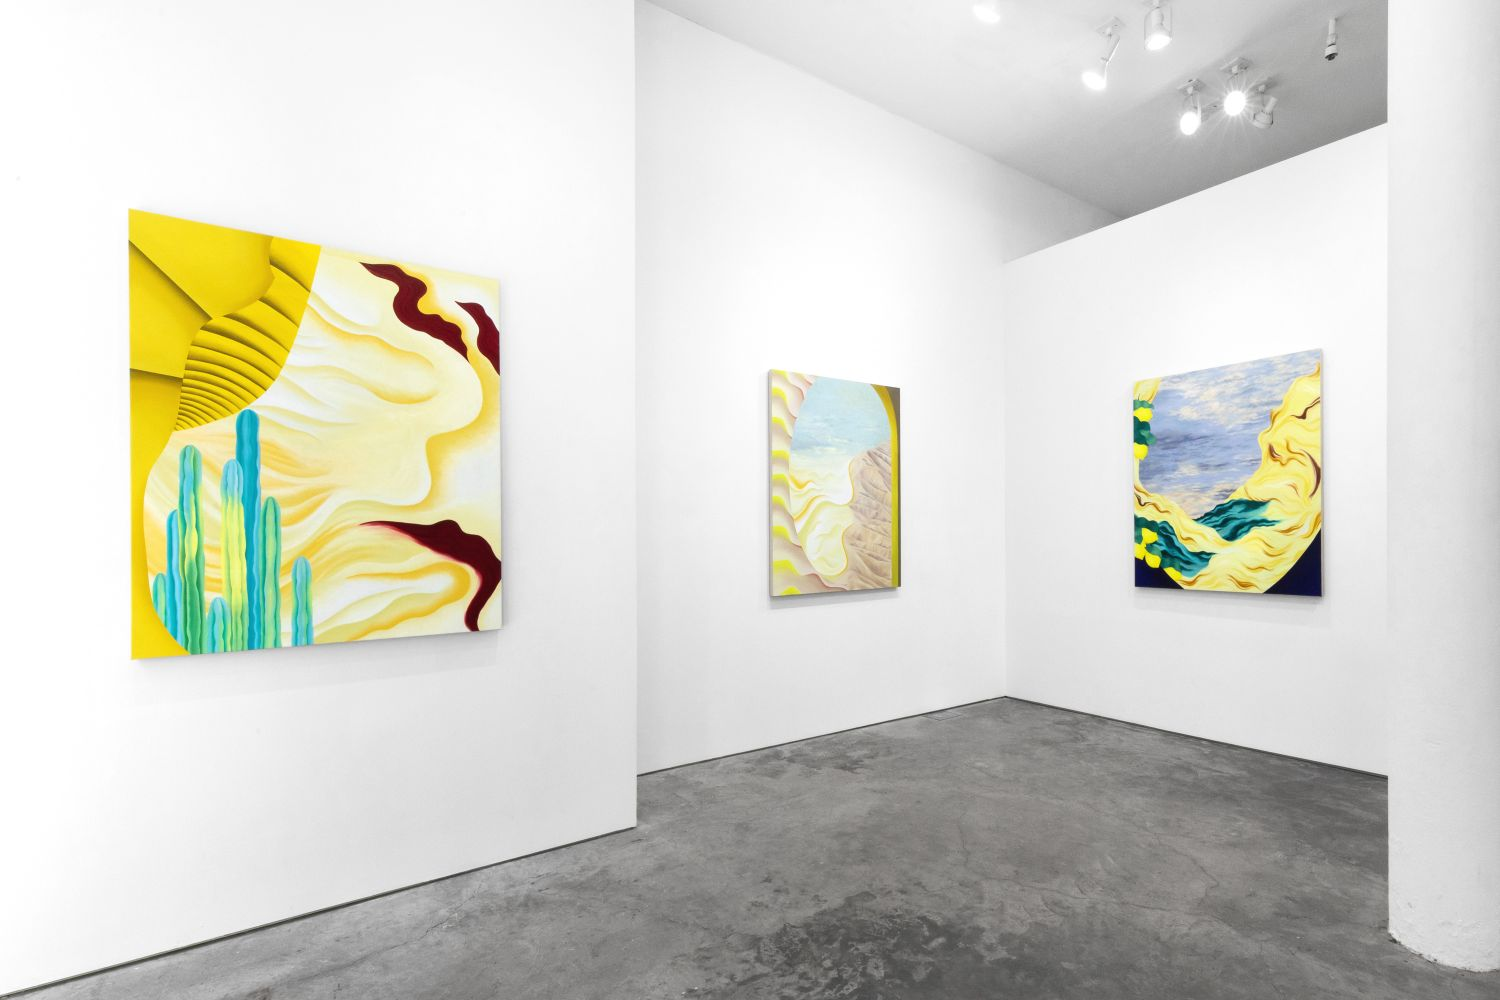 Joani Tremblay: The whole time, the sun - install view